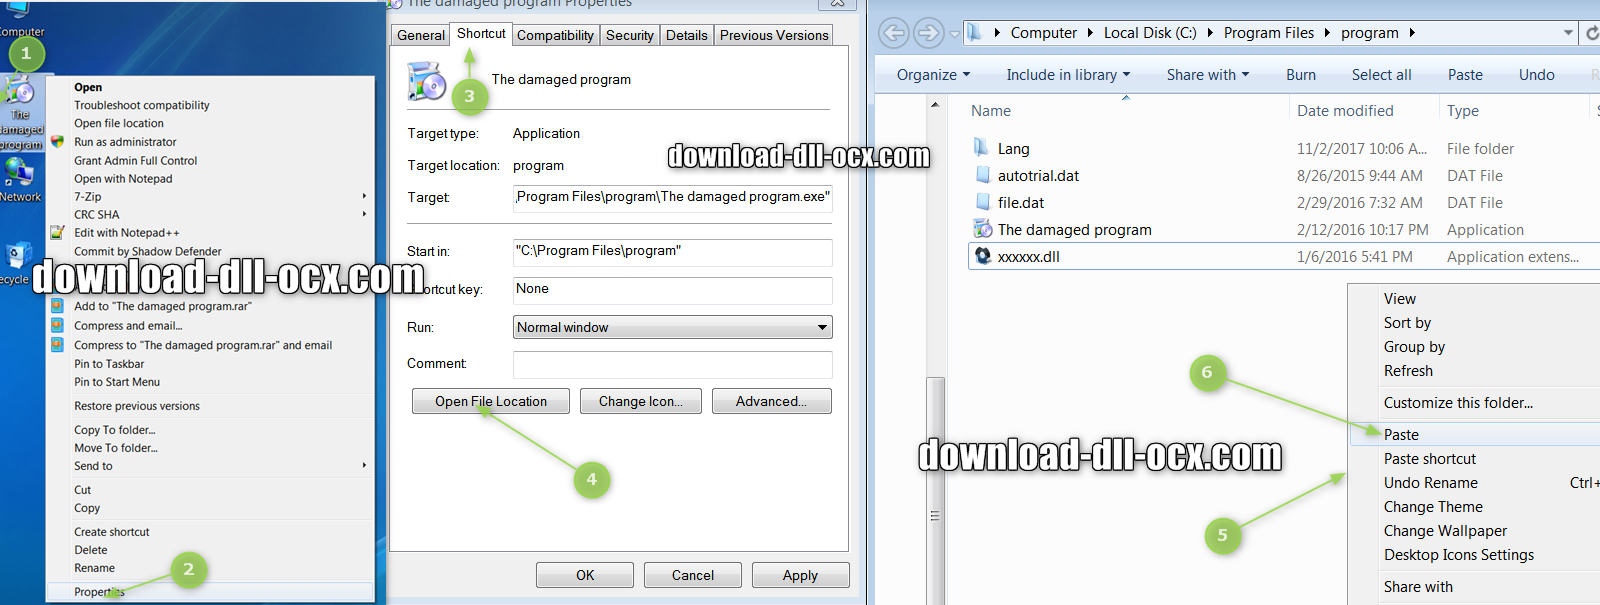 how to install CDBurn.dll file? for fix missing